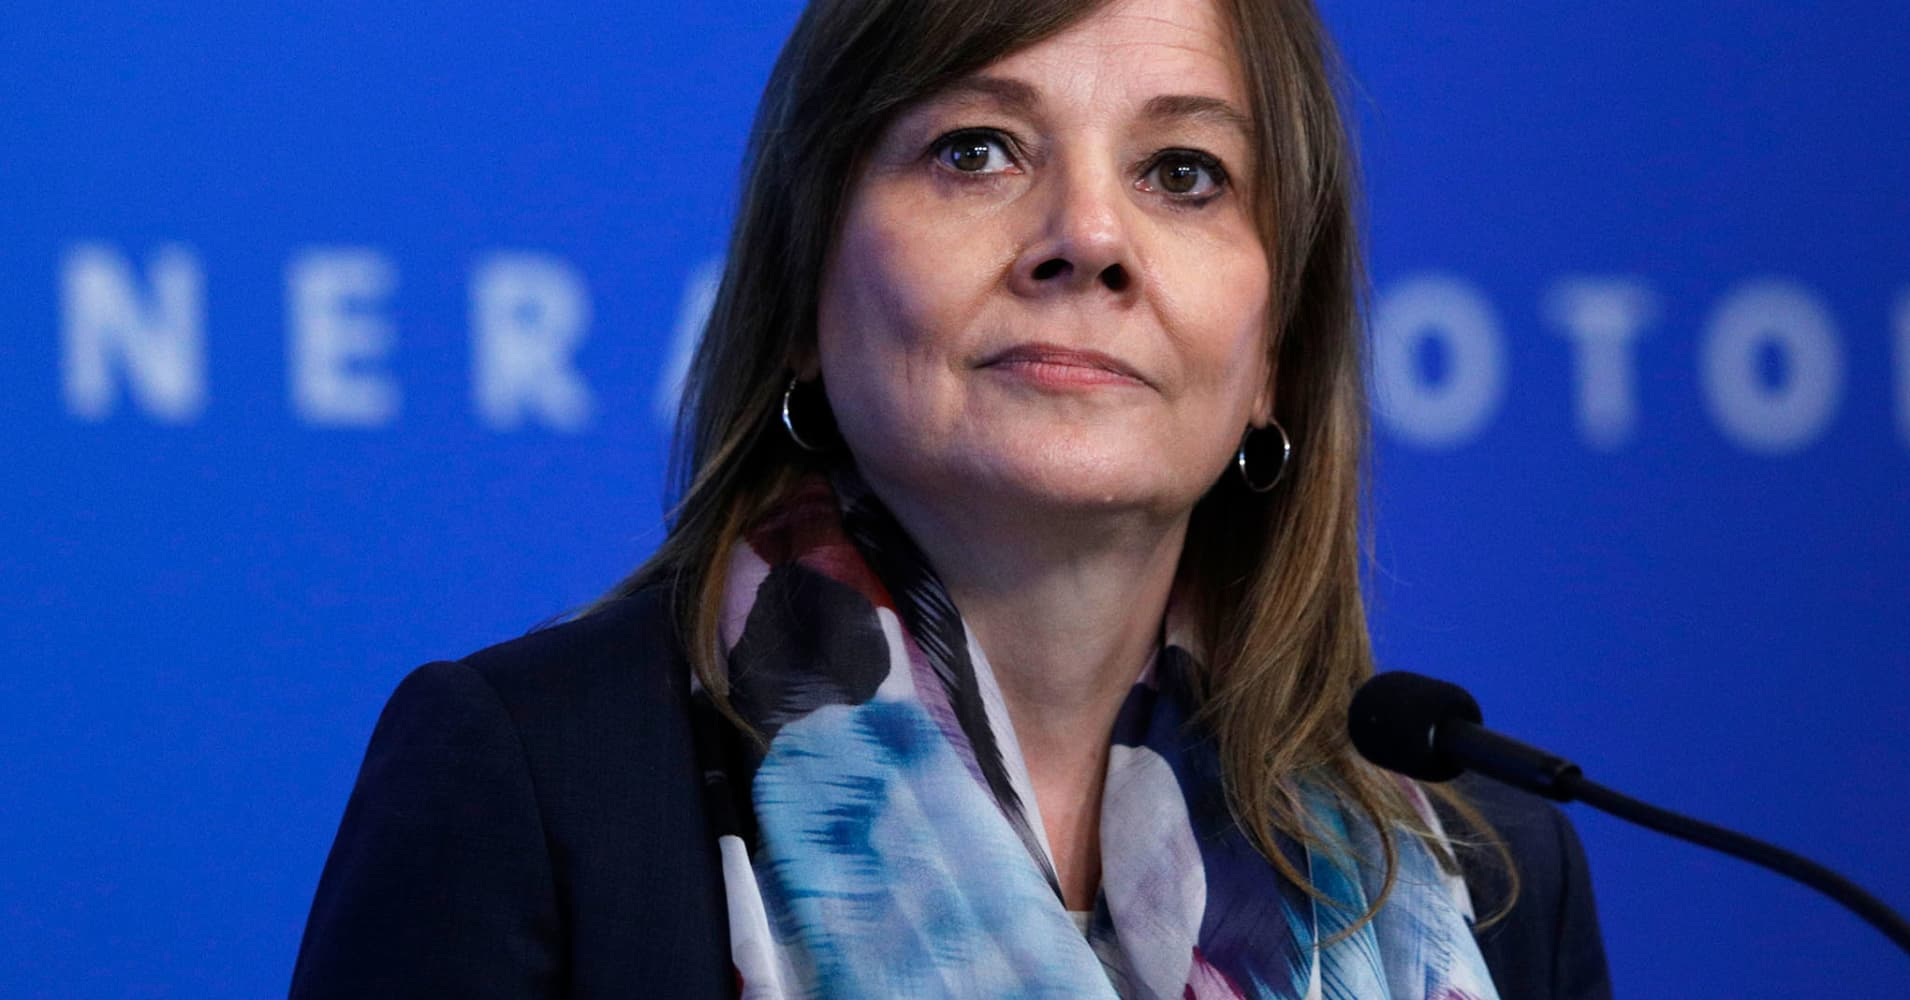 General Motors CEO Mary Barra speaks to the news media June12, 2018 in Detroit, Michigan.